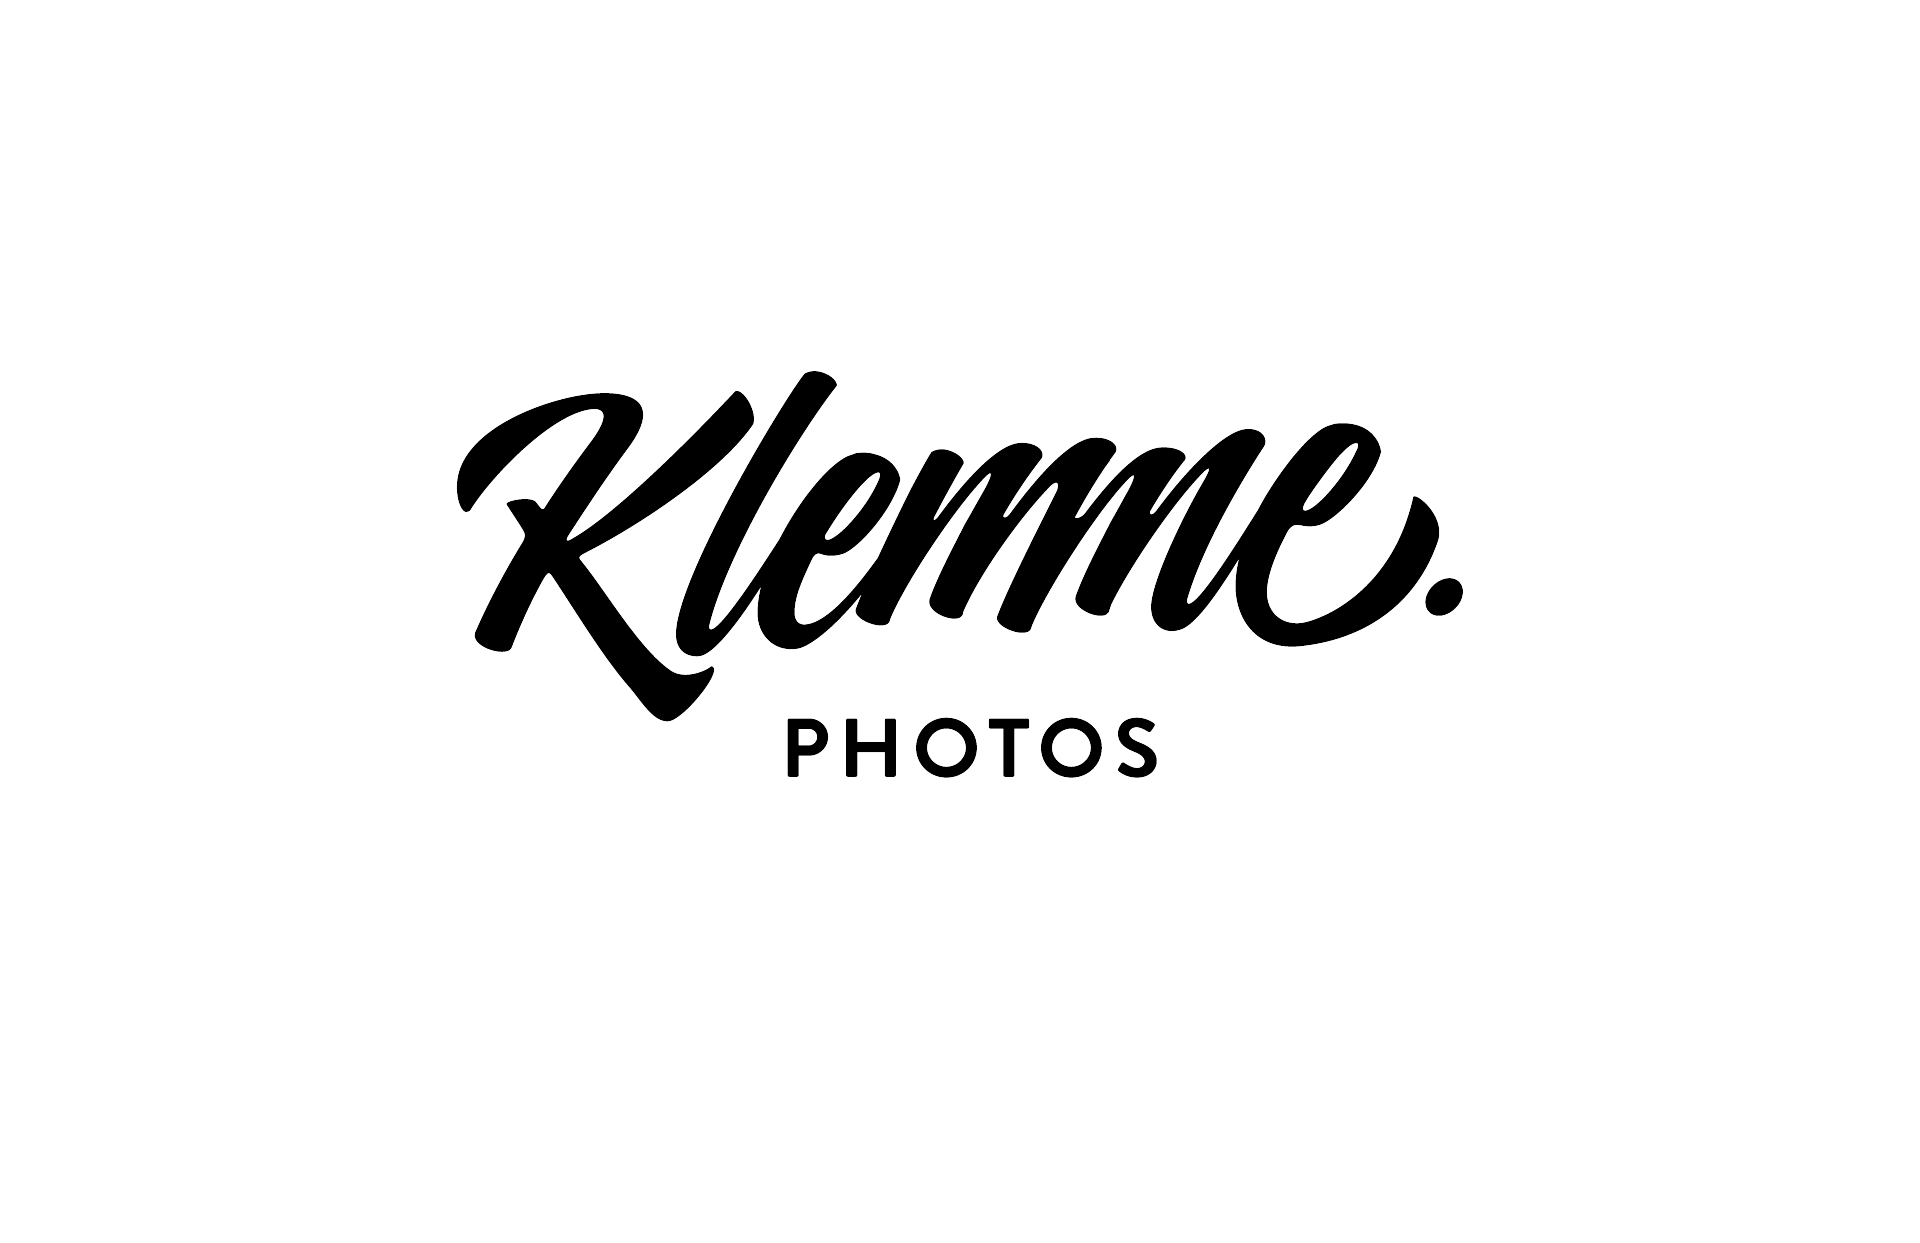 Klemme.Photos Logo